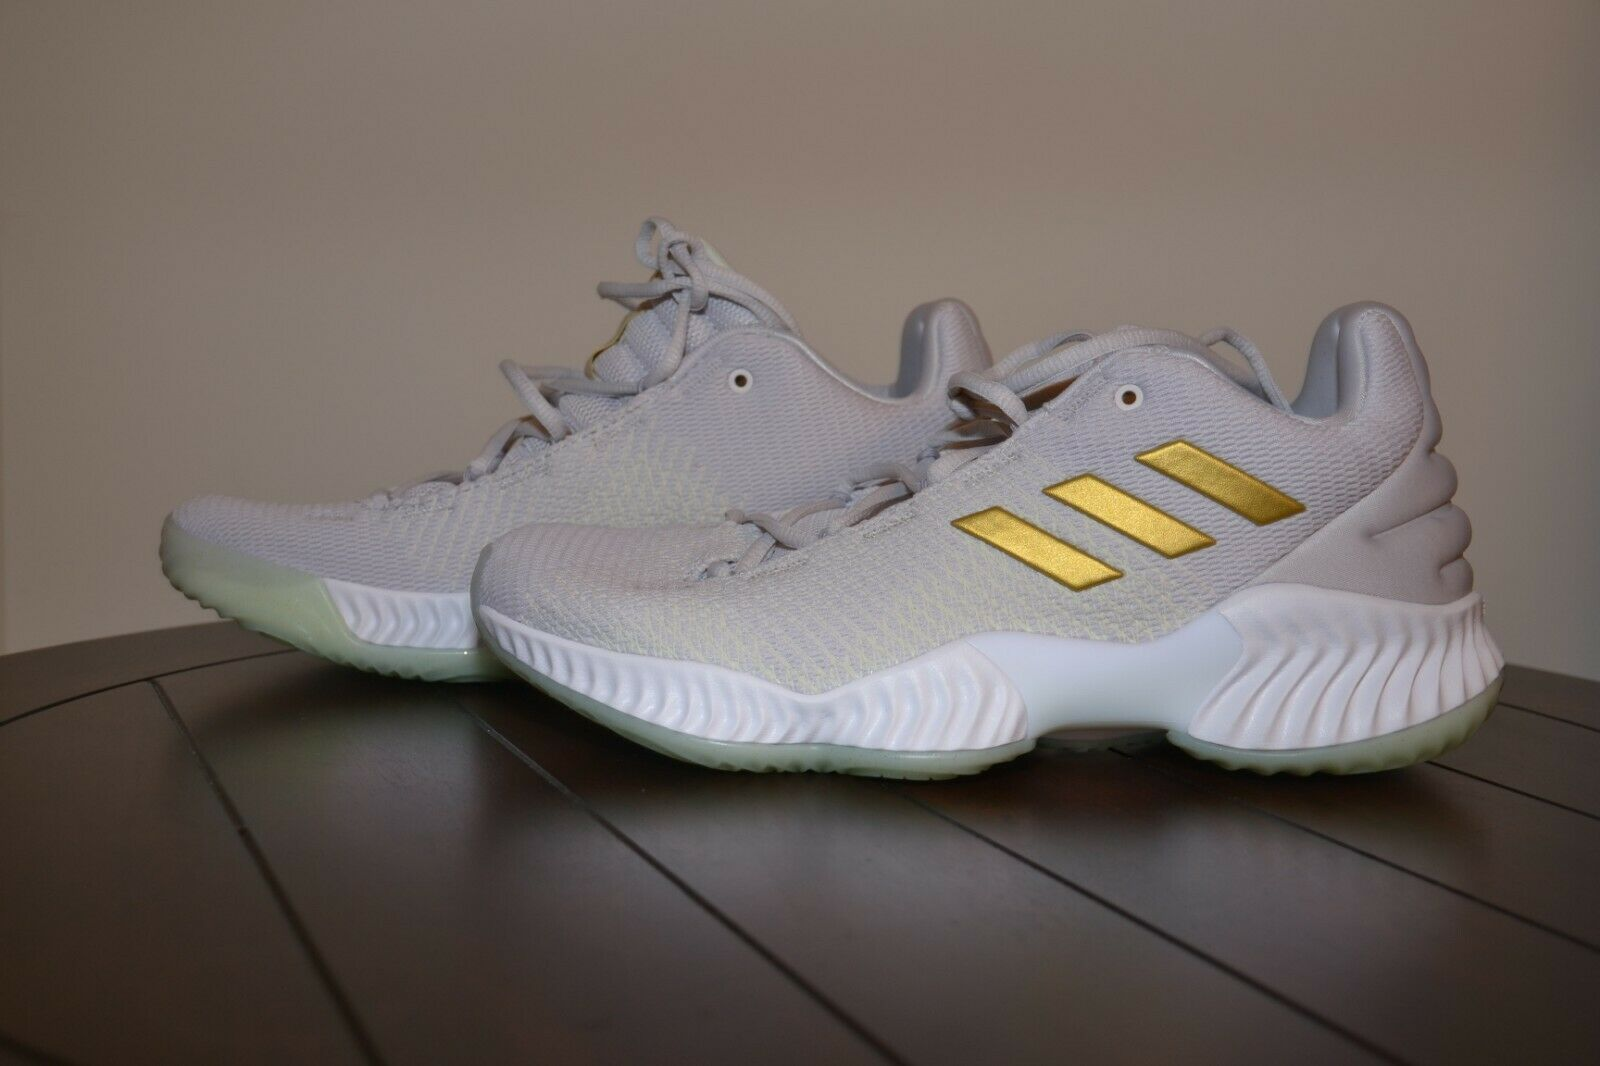 Adidas Pro Bounce 2018 Low Basketball shoes Grey One gold Sneakers B41863 Sz 9